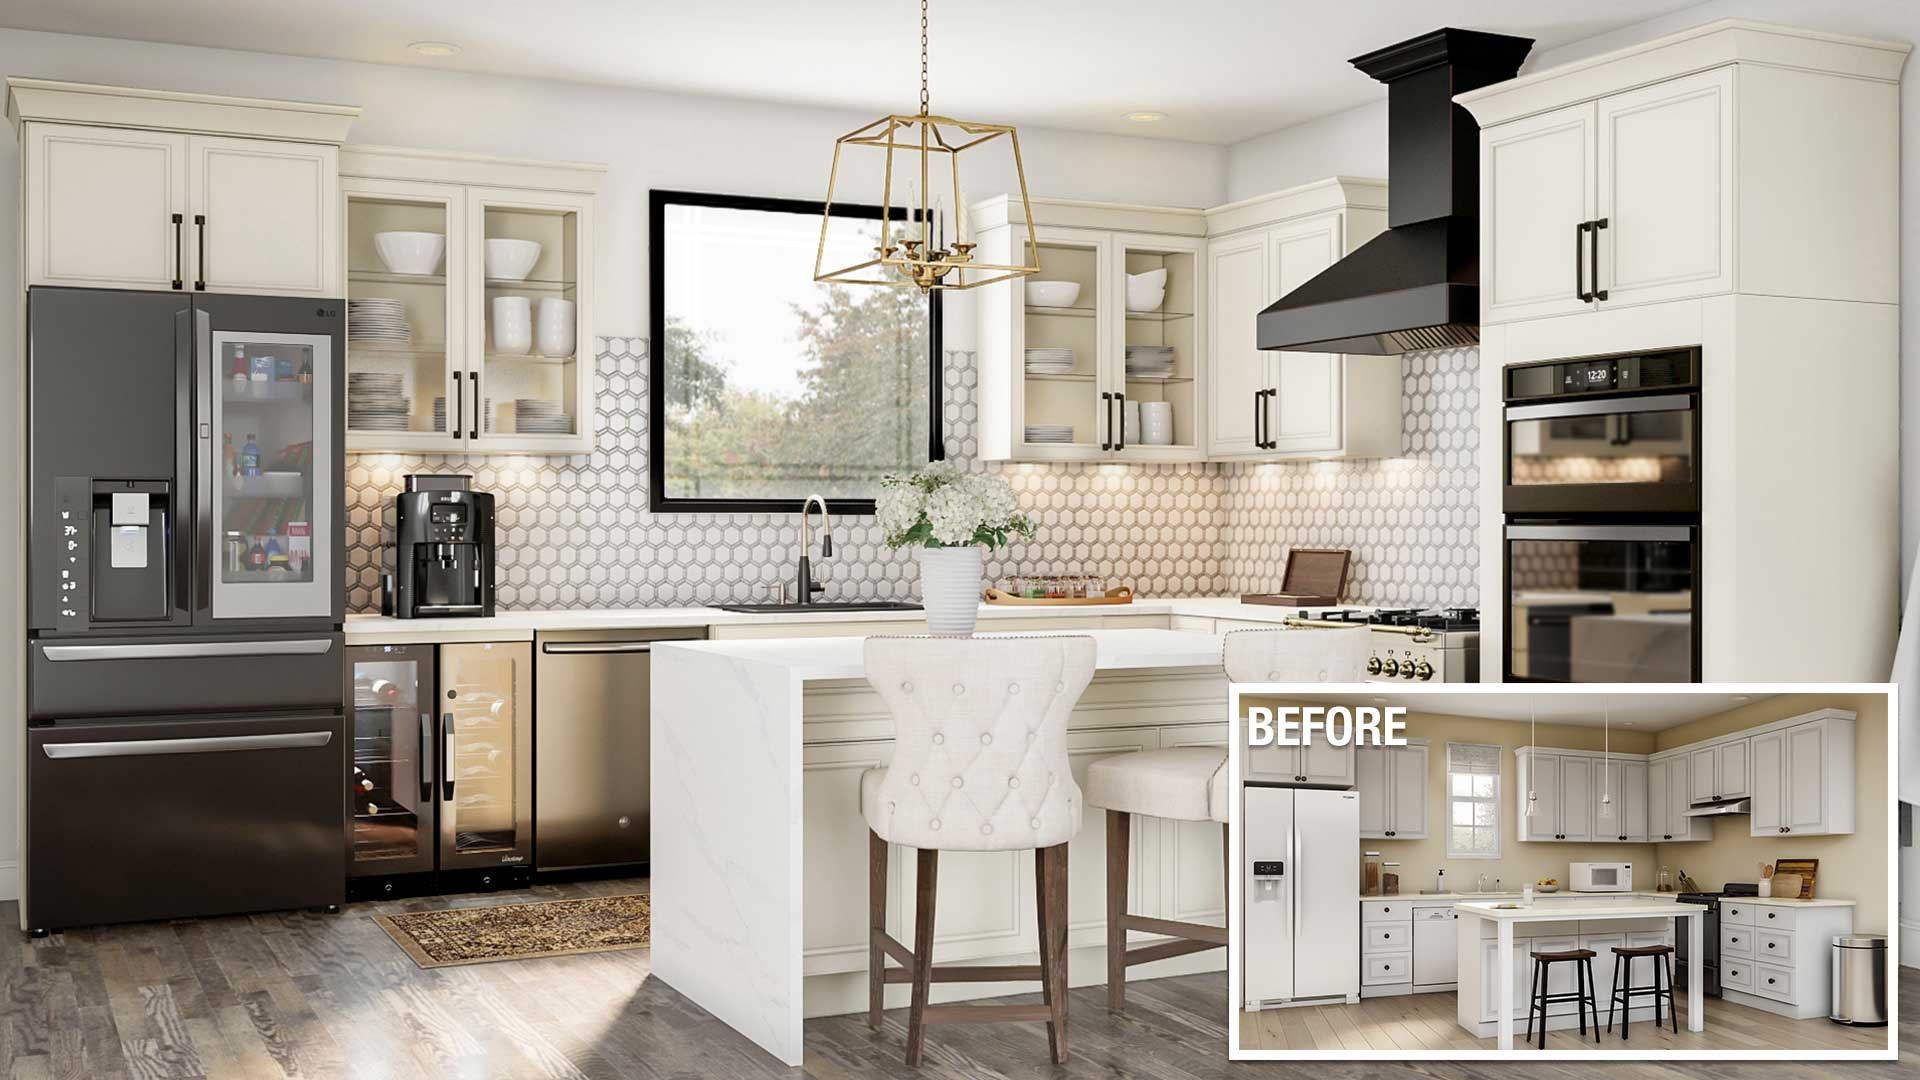 Kitchen remodel - upscale